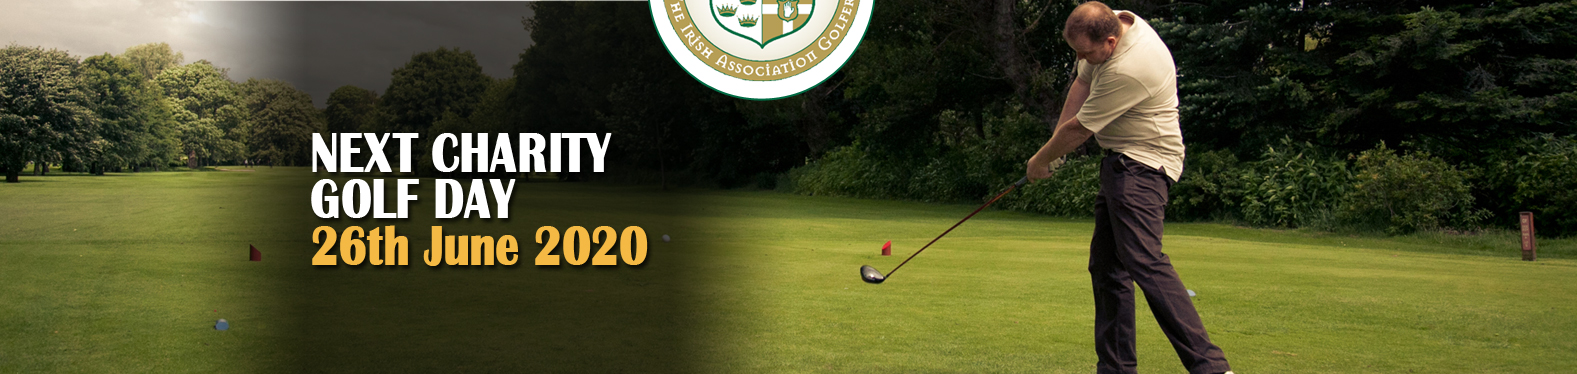 irish golf association